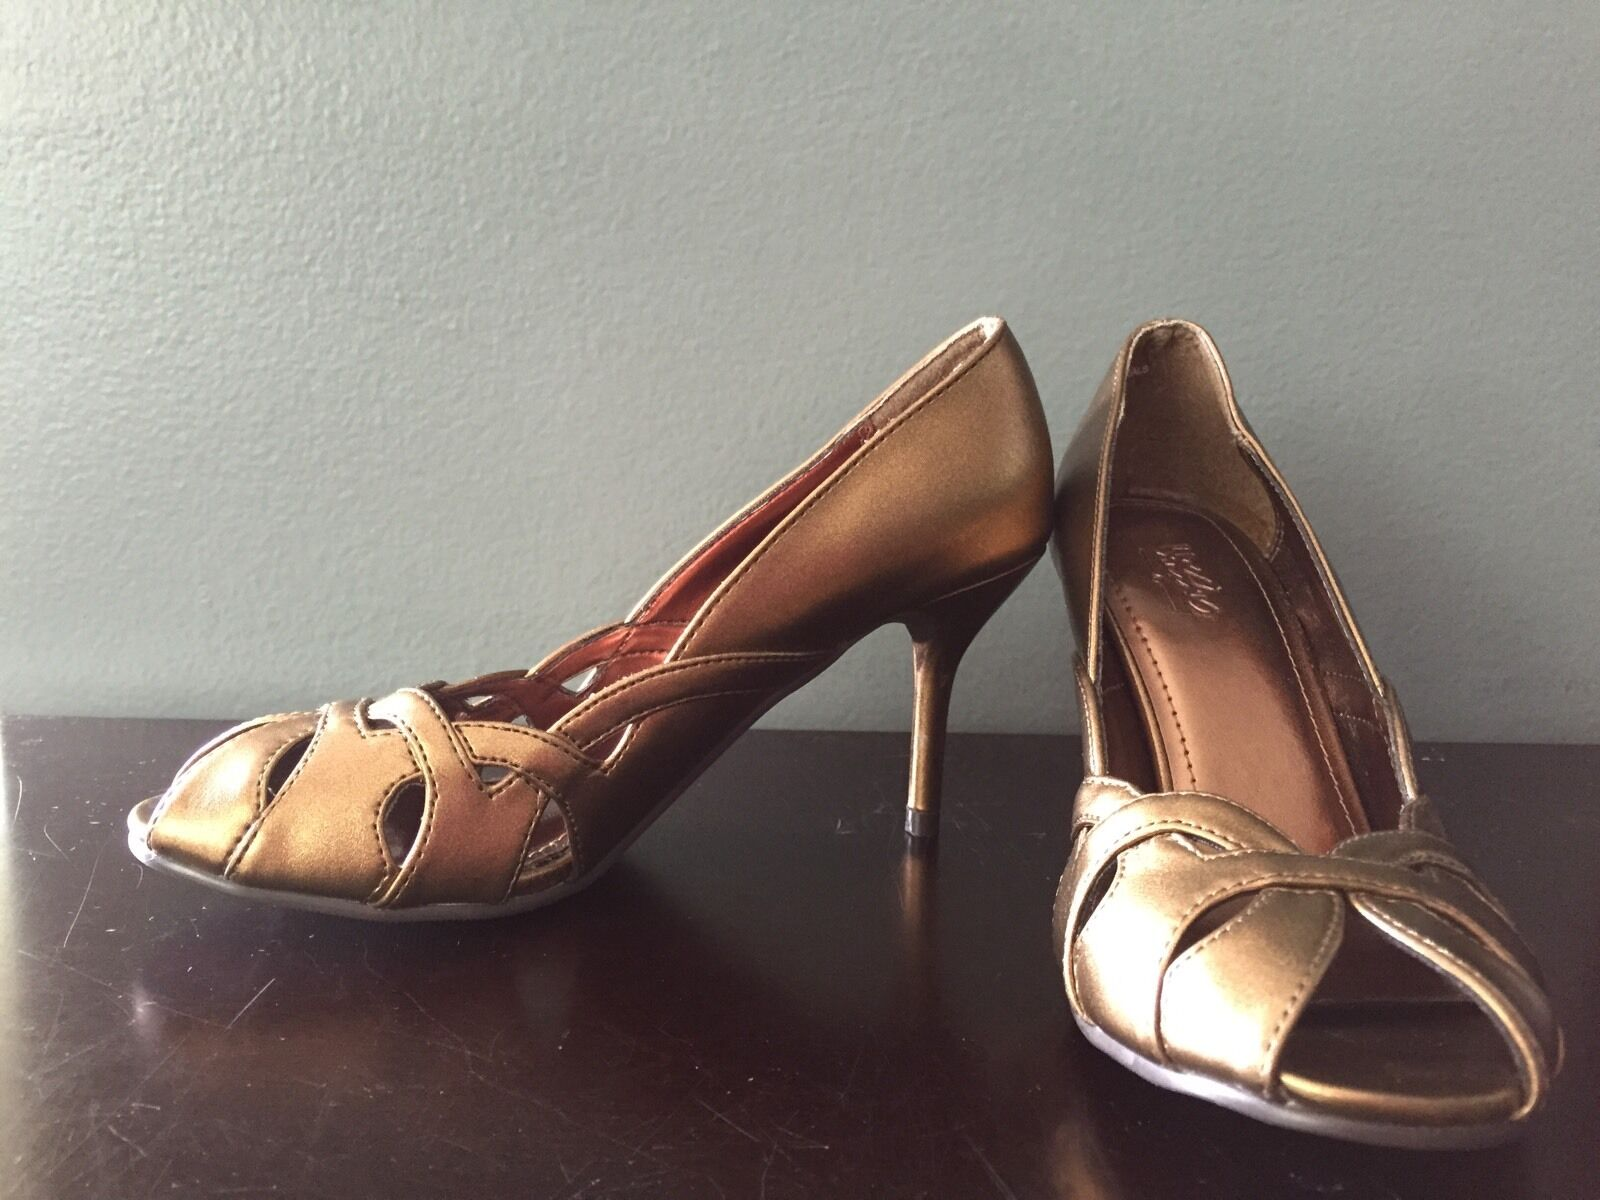 Mossimo Womens Metallic Bronze Open Toe Heels NEW Without 1/2 Tags Size 5 & 1/2 Without 8e15ae